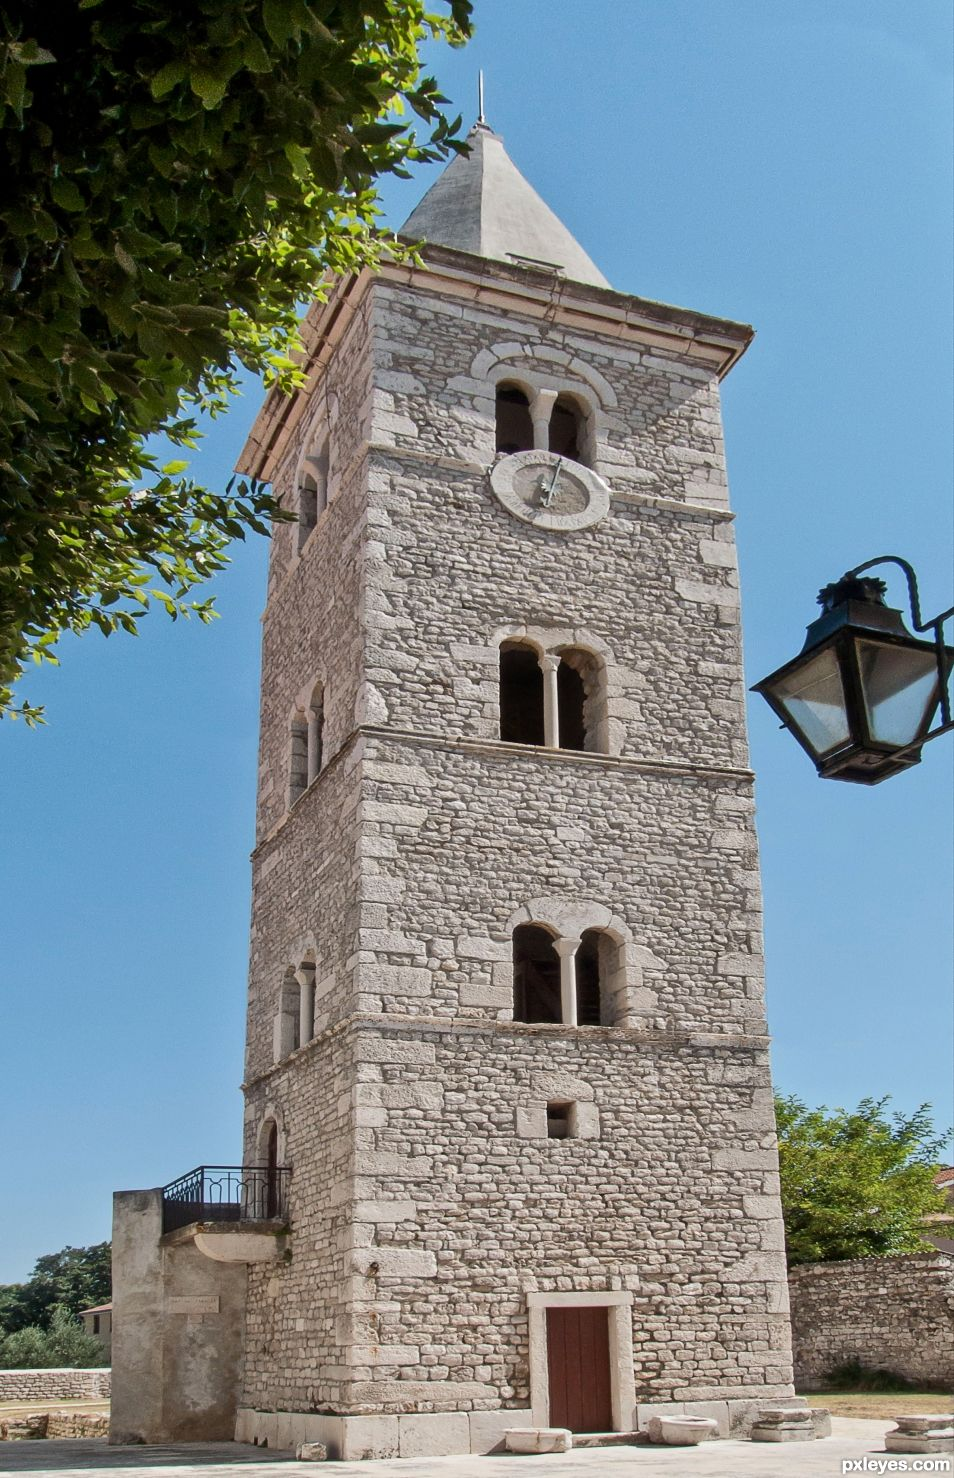 6th century tower